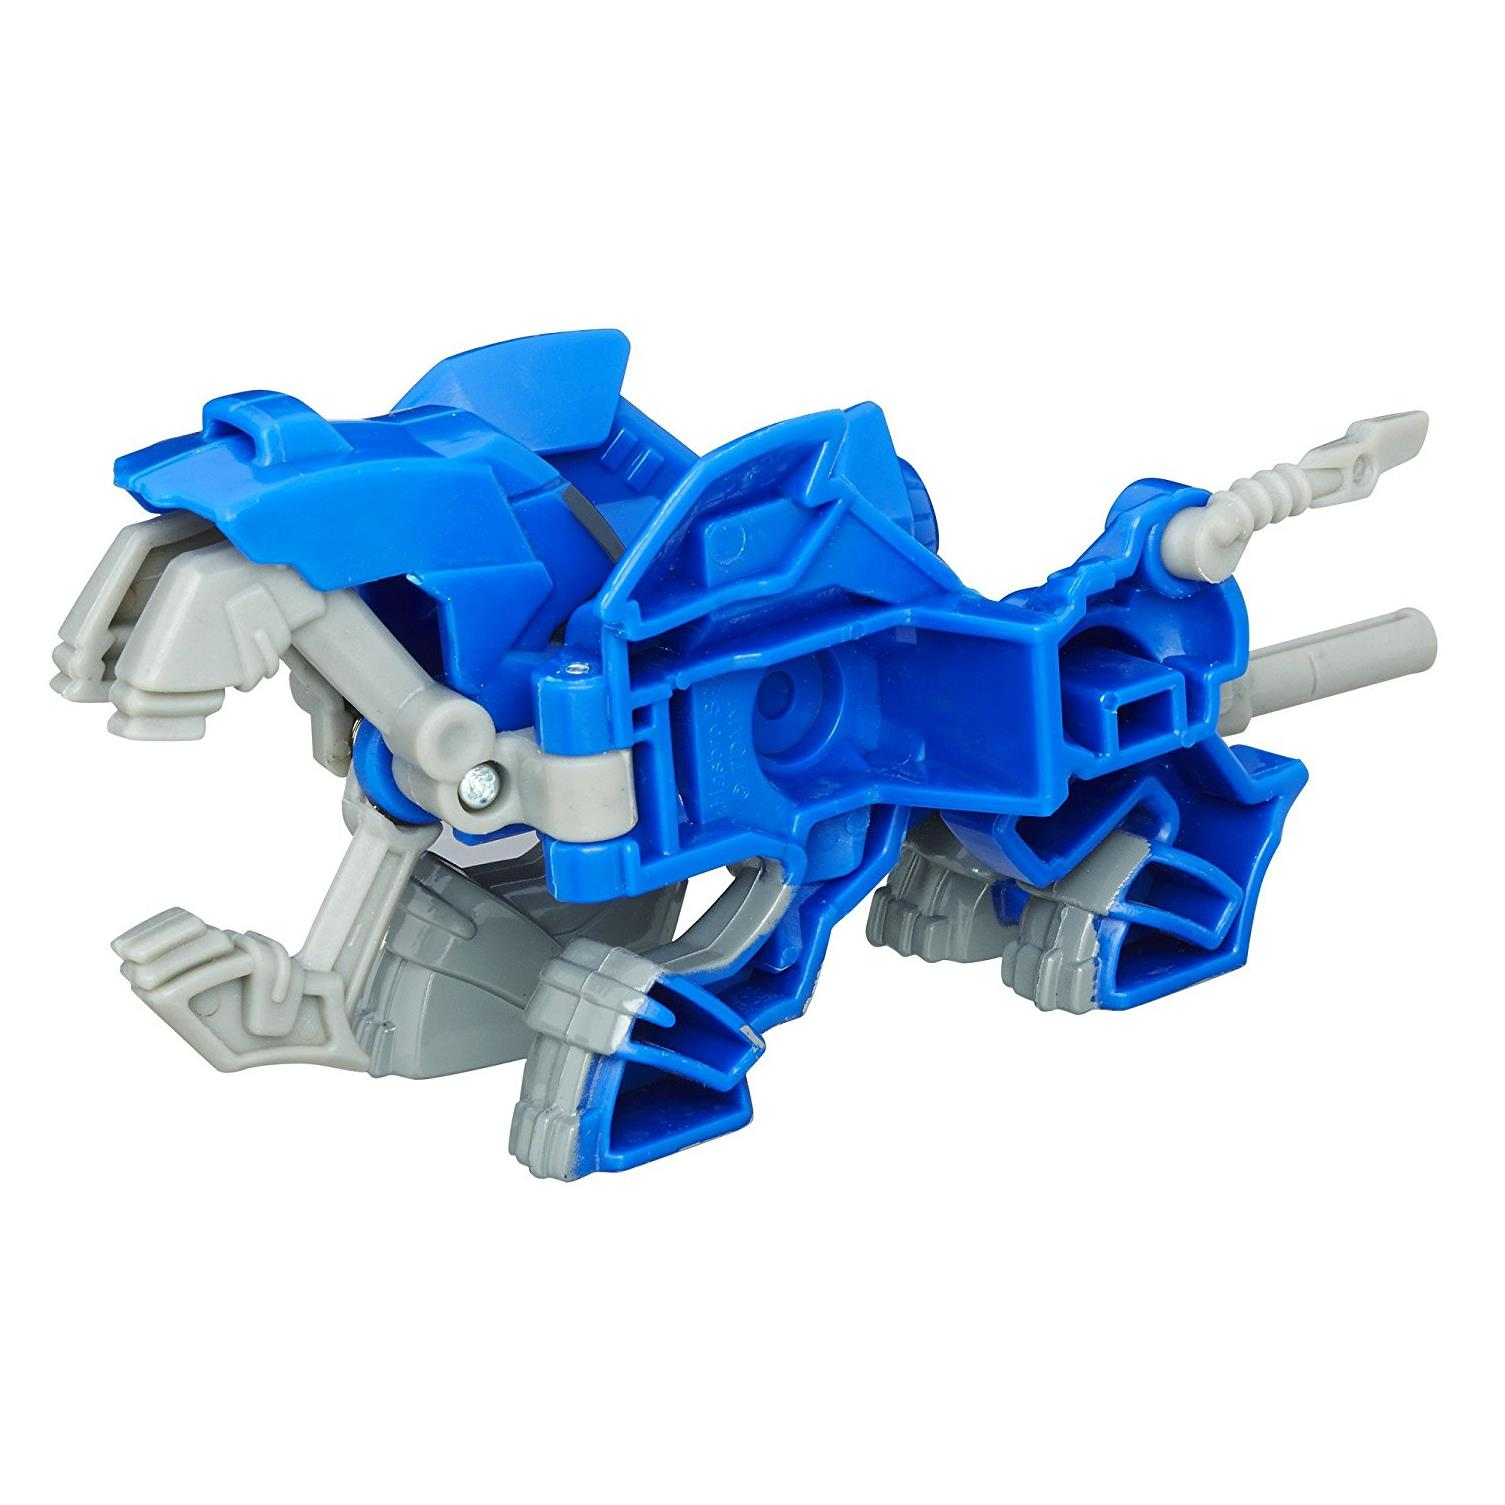 Playskool Hereos Transformers Rescue Bots Valor The Lion-Bot by Hasbro